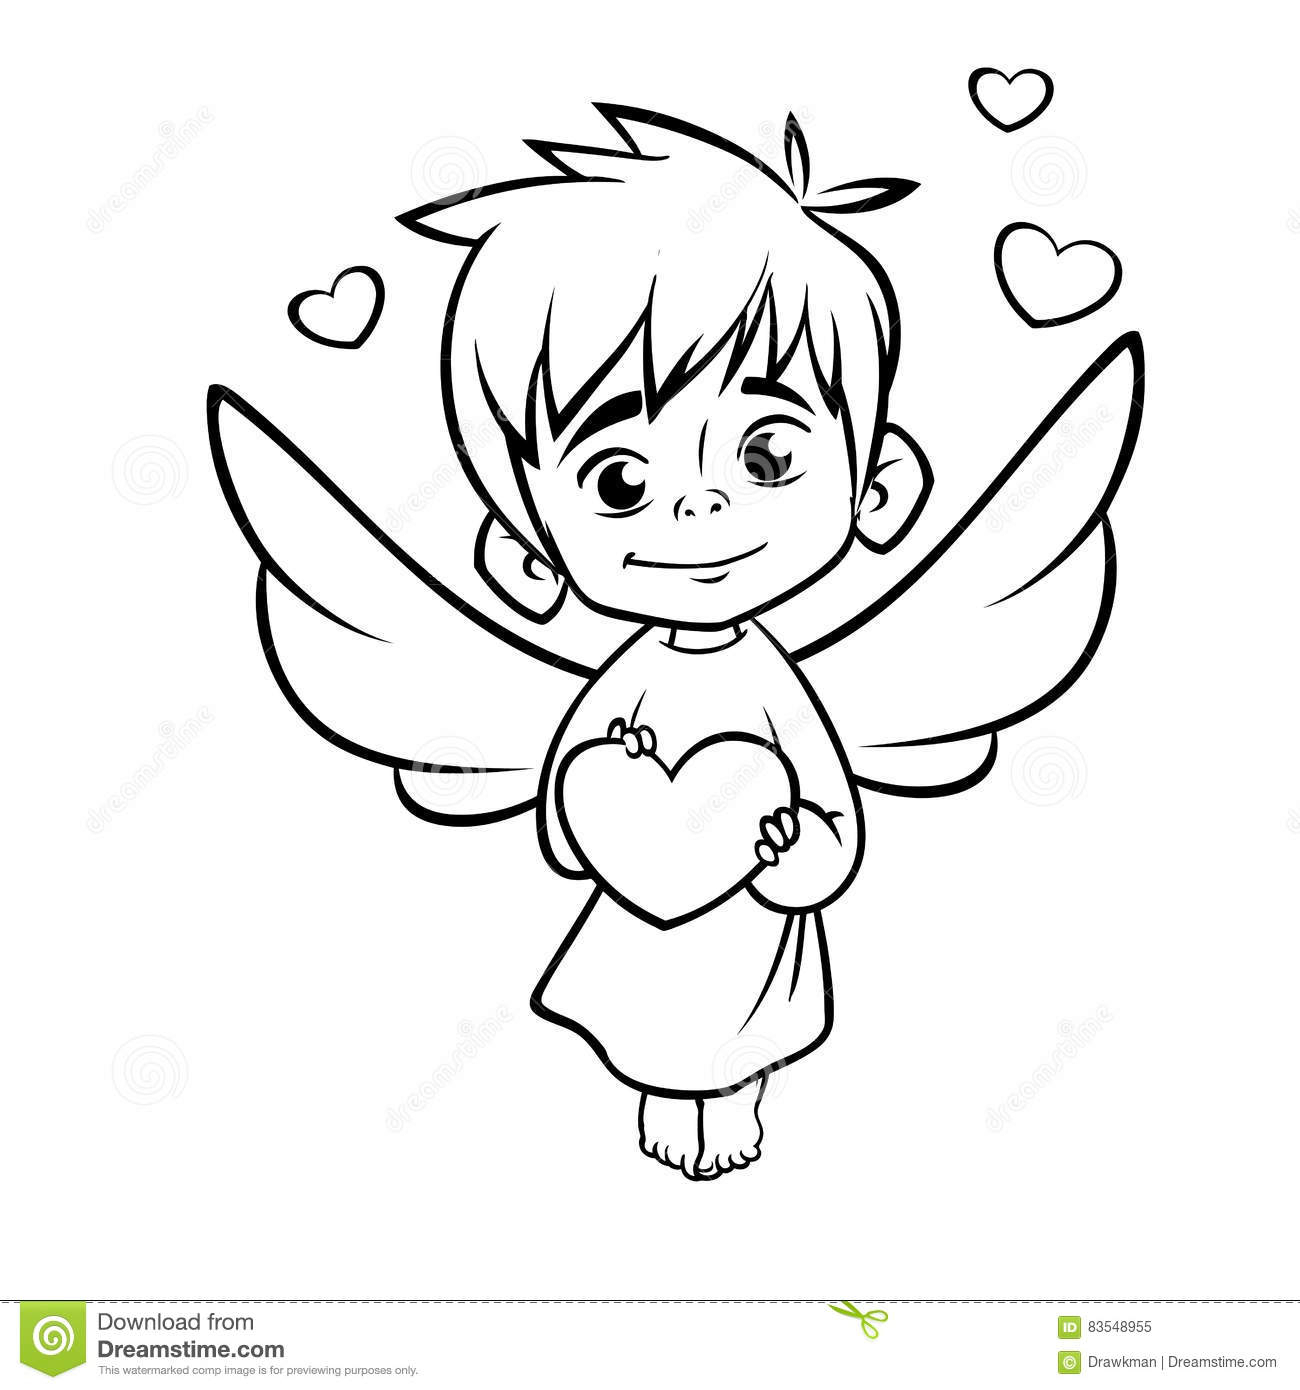 how to draw a cupid how to draw guide learn how to draw learn how to draw how a draw cupid to